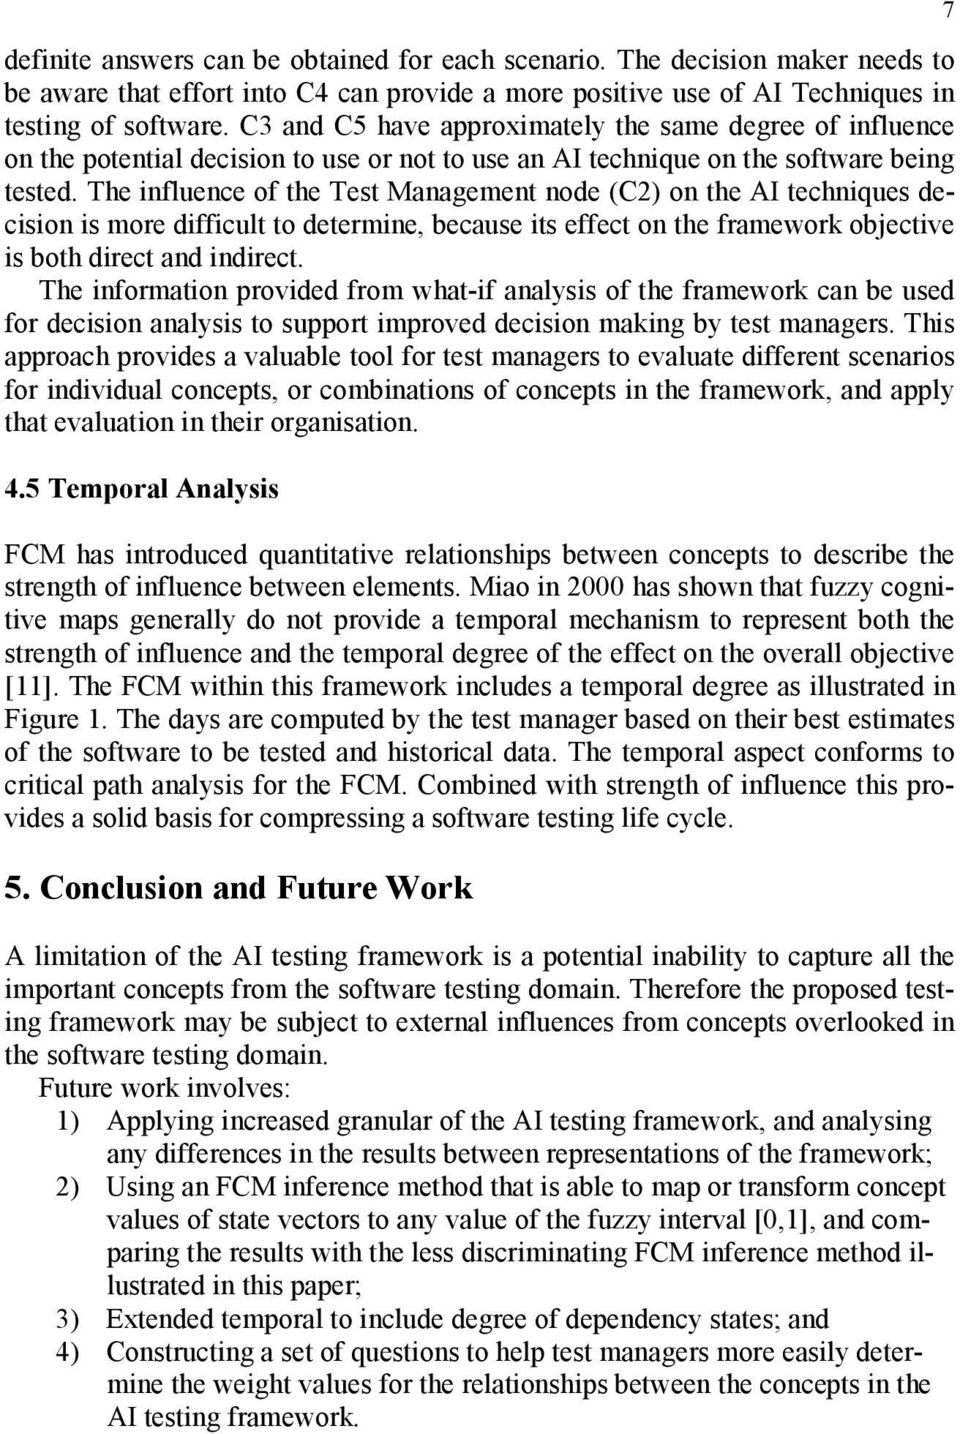 The influence of the Test Management node (2) on the AI techniques decision is more difficult to determine, because its effect on the framework objective is both direct and indirect.